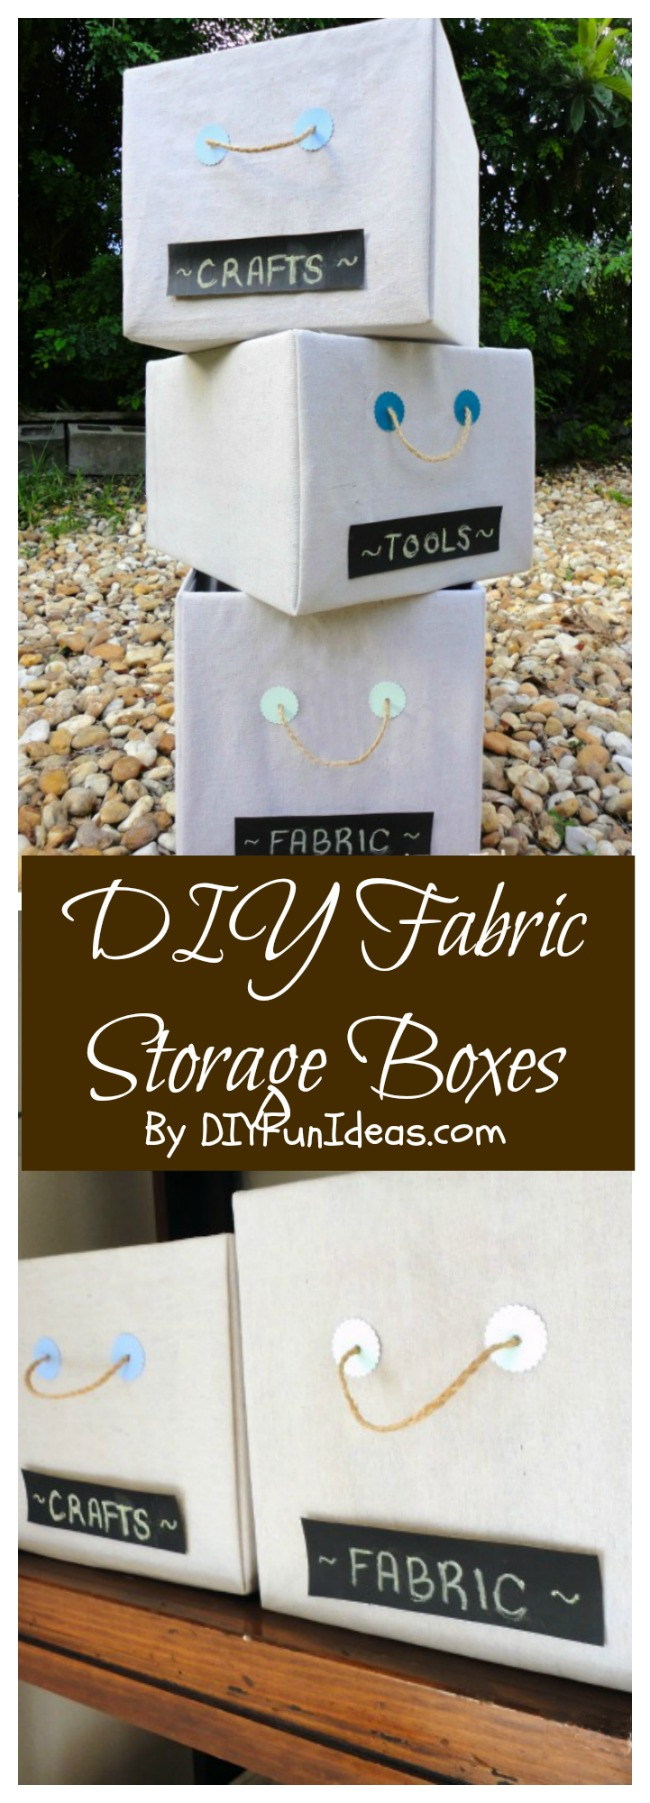 How To Make DIY Fabric covered storage boxes & GET ORGANIZED WITH DIY FABRIC COVERED STORAGE BOXES - Do-It-Yourself ...